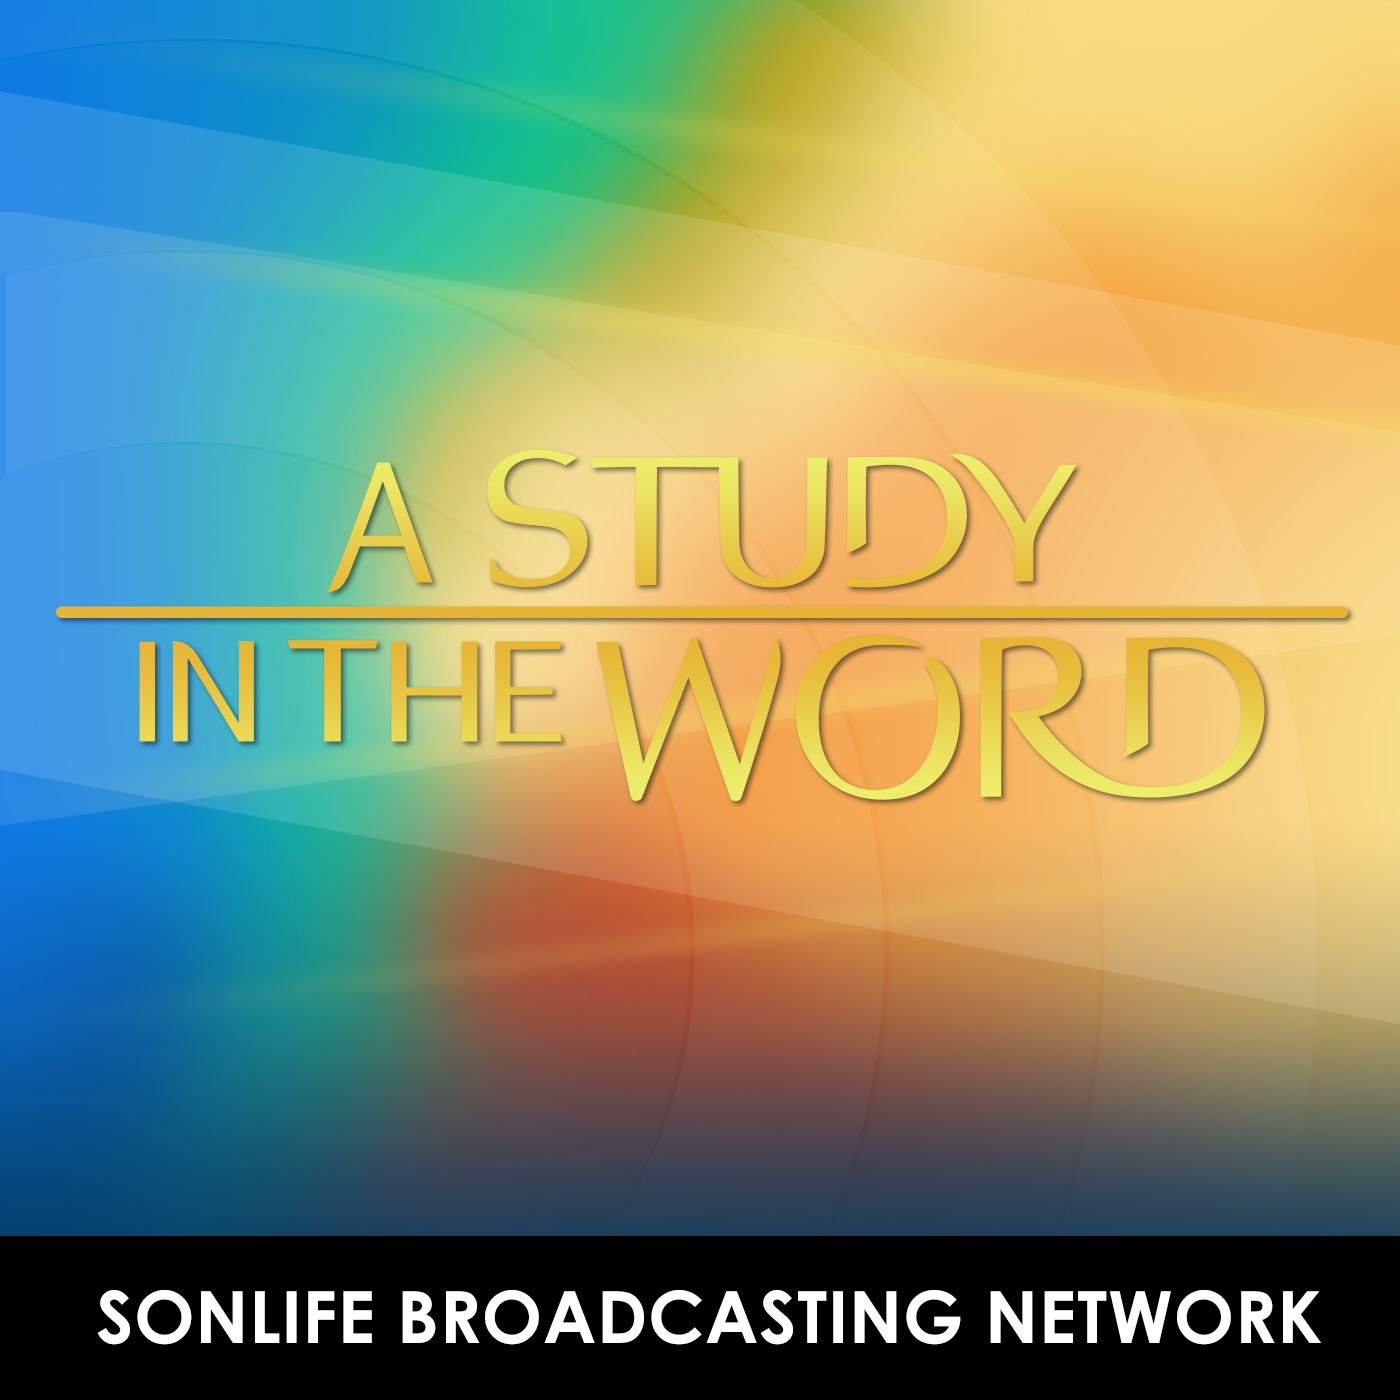 SonLife Broadcasting Network   SBN   Jimmy Swaggart Ministries